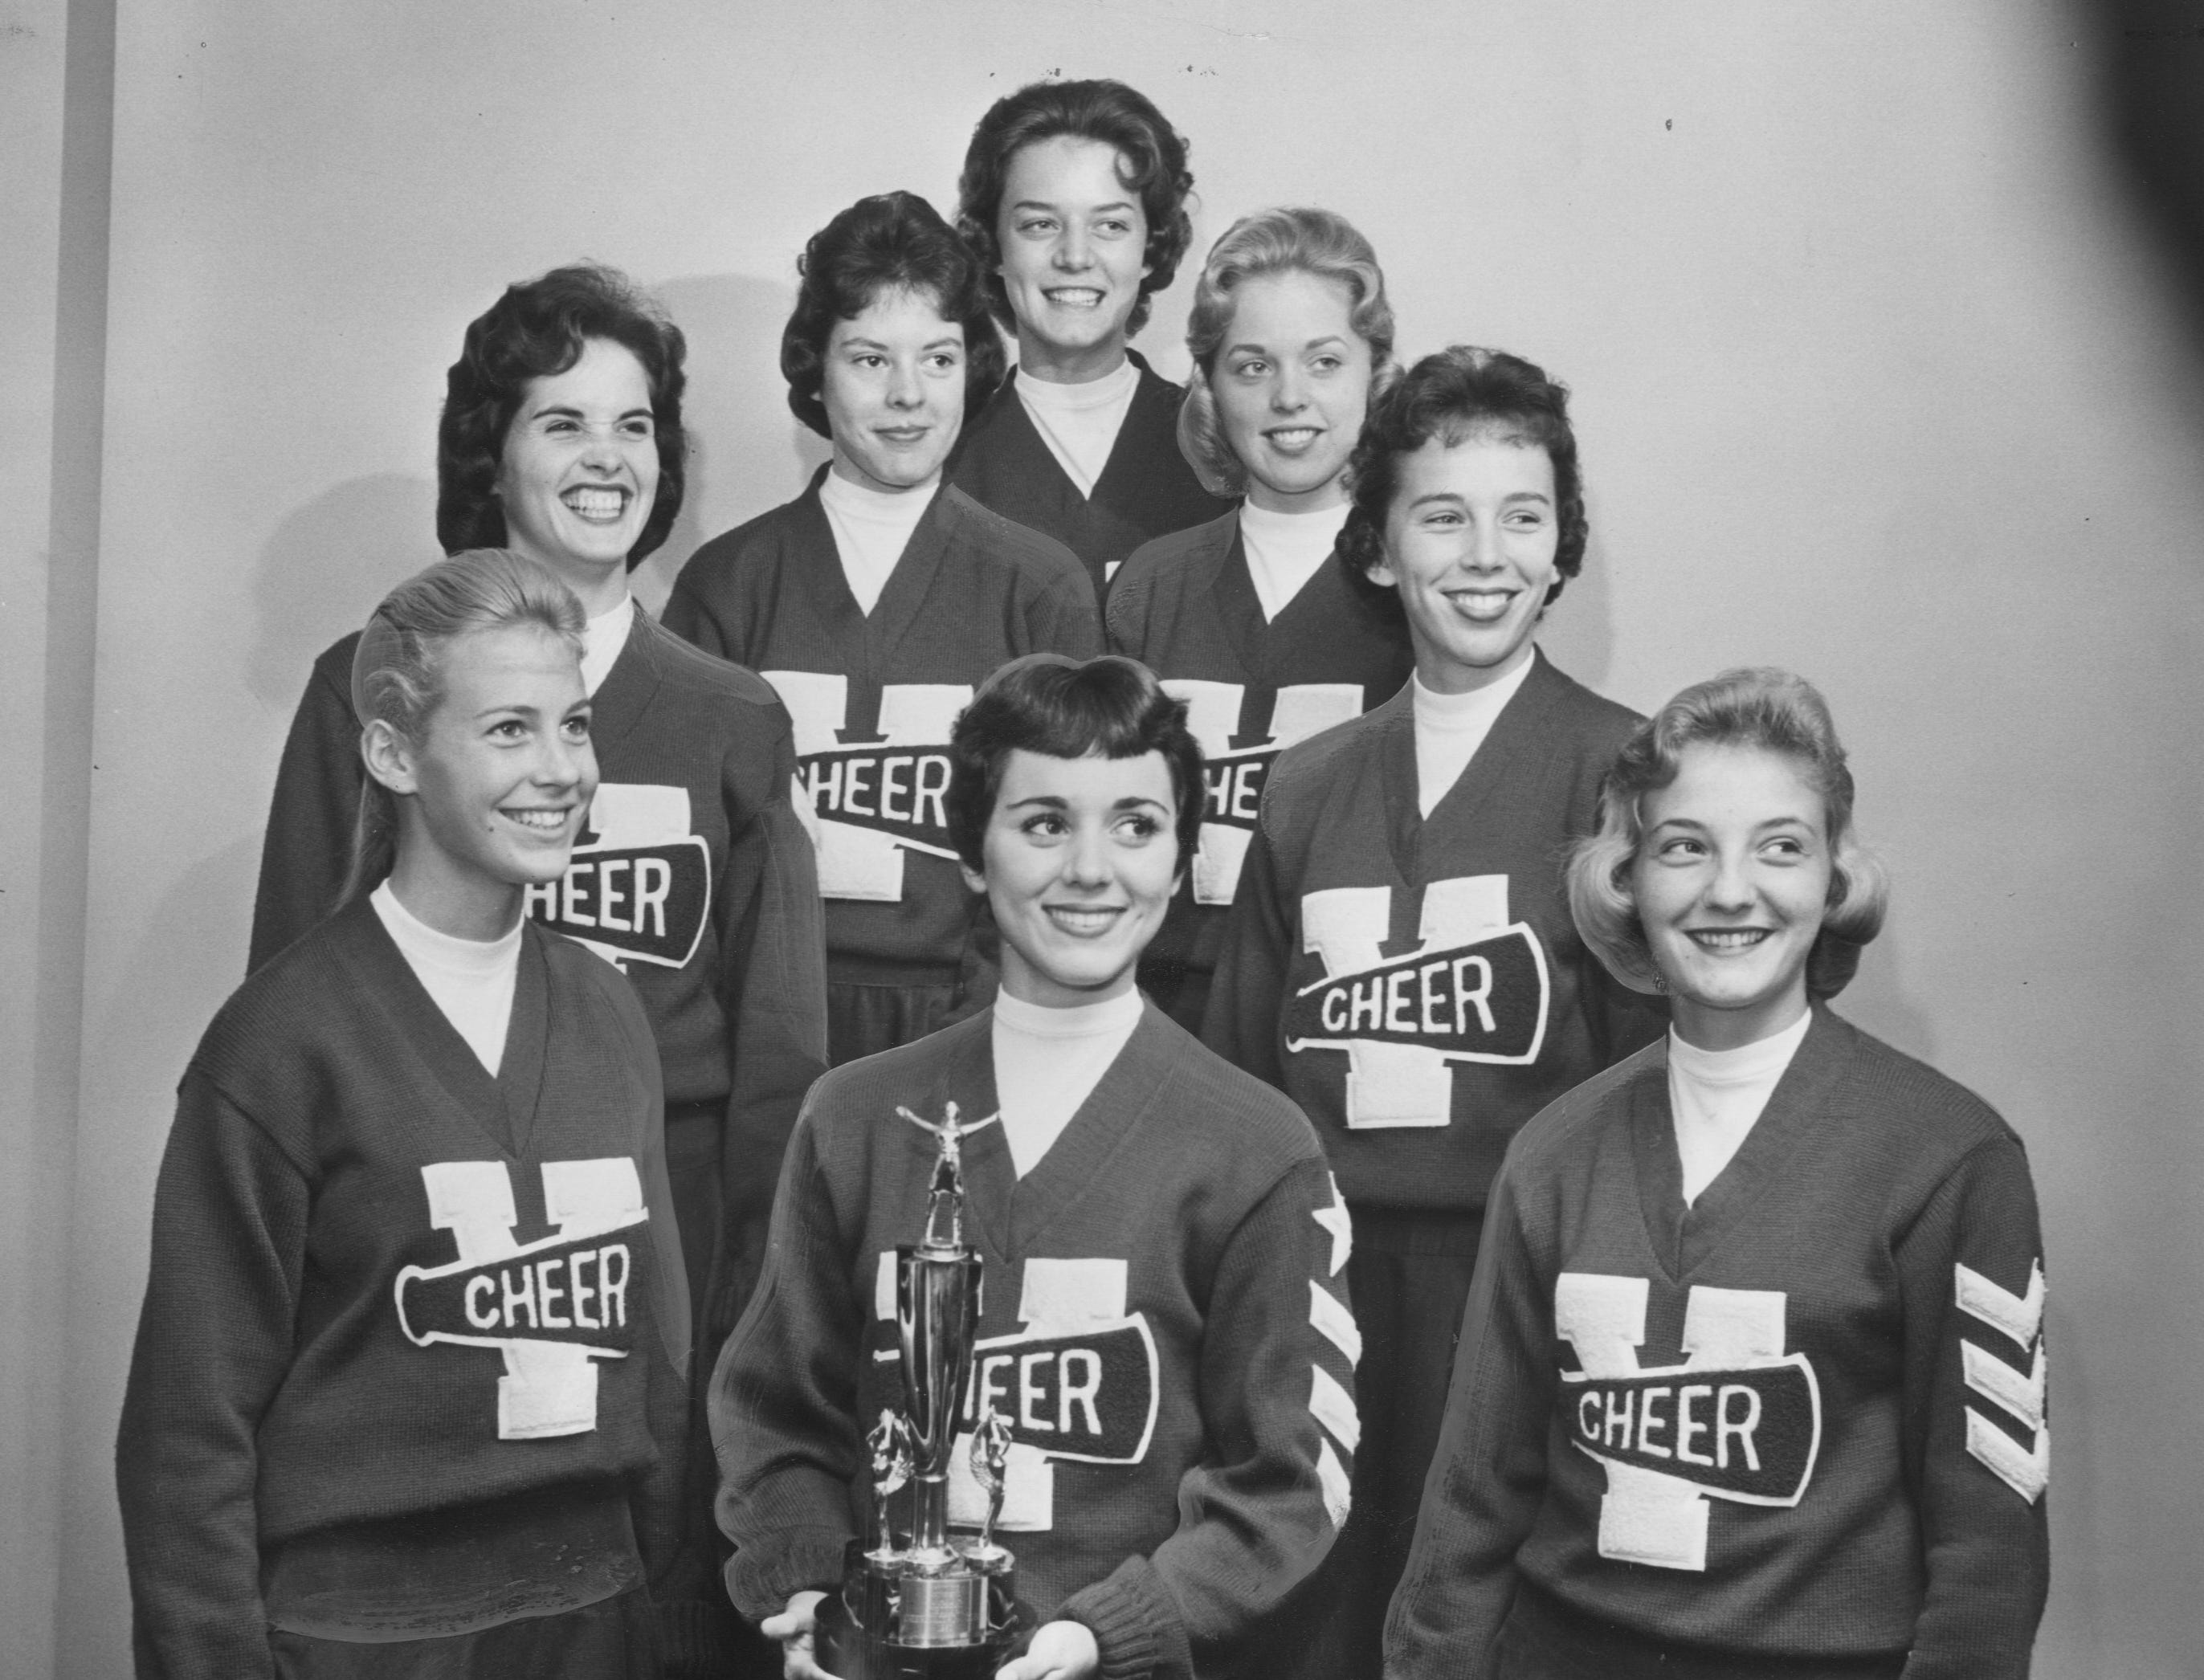 Named the best cheerleading group during a recent clinic at Western Kentucky State College were these Valley High School cheerleaders. Oct. 5, 1960